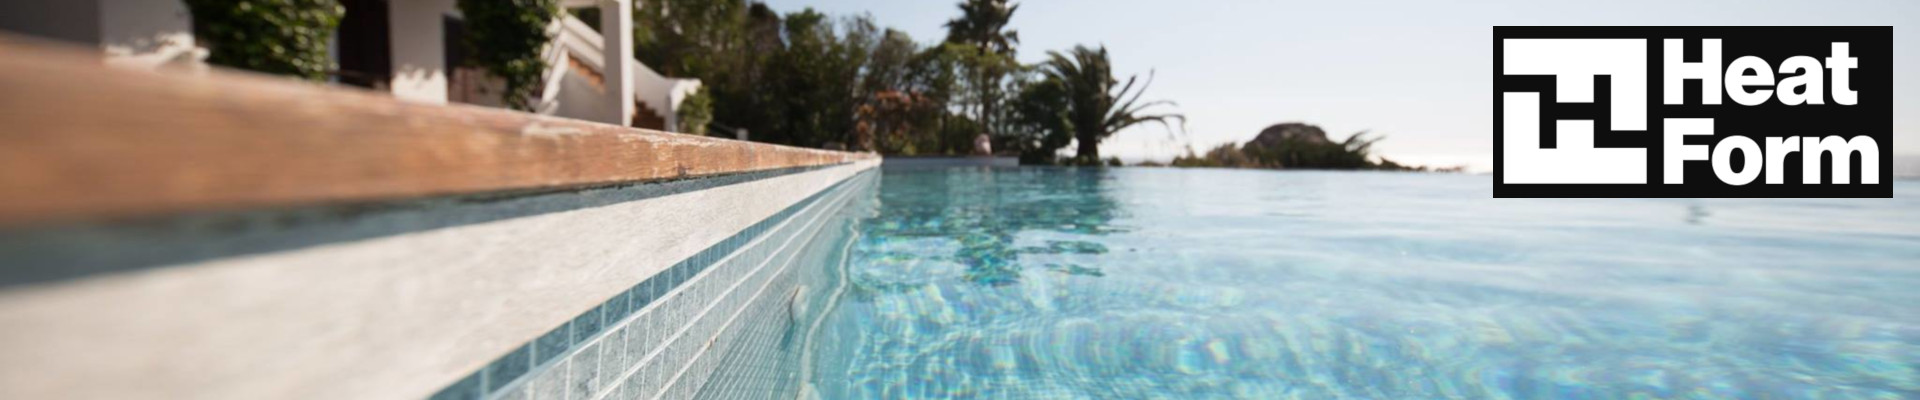 HeatForm Insulated Pool Panels